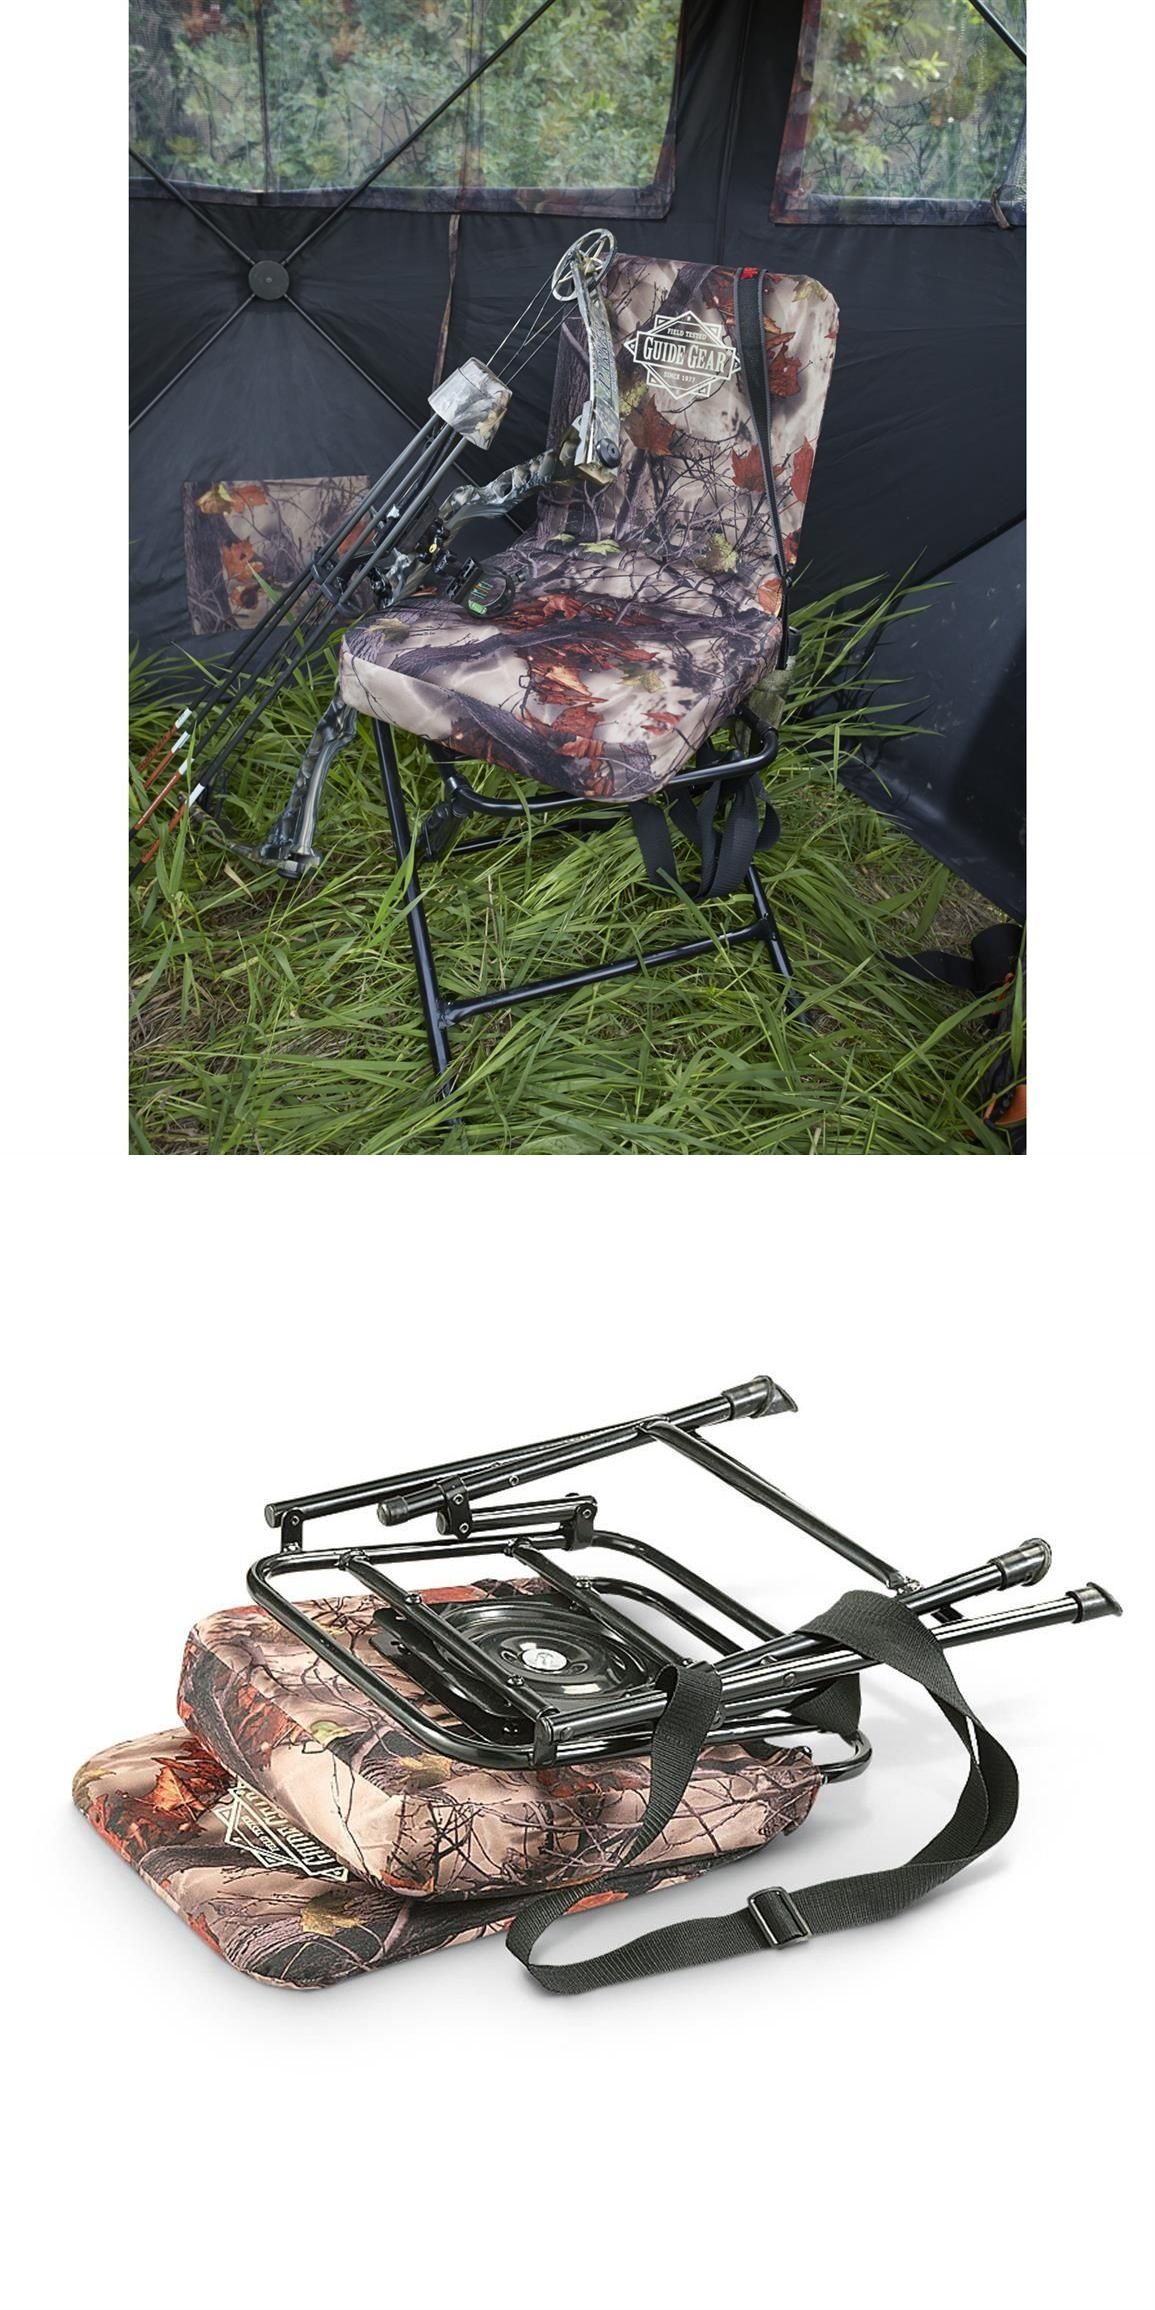 Seats and Chairs Hunting Chair 360 Swivel Hunters Camo Seat